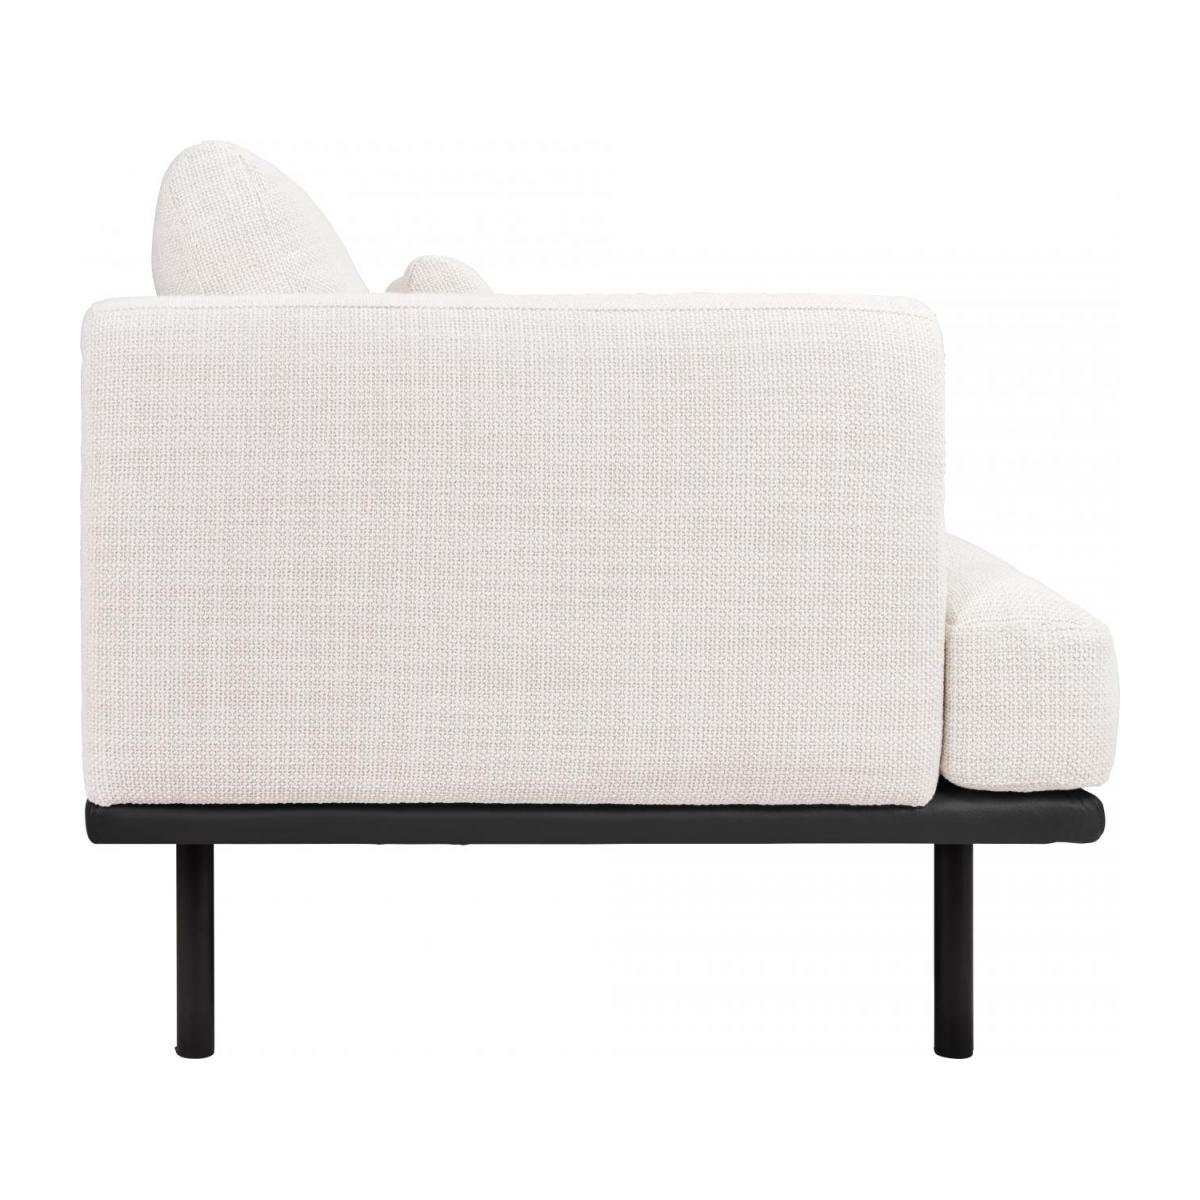 3 seater sofa in Fasoli fabric, snow white with base in black leather n°5